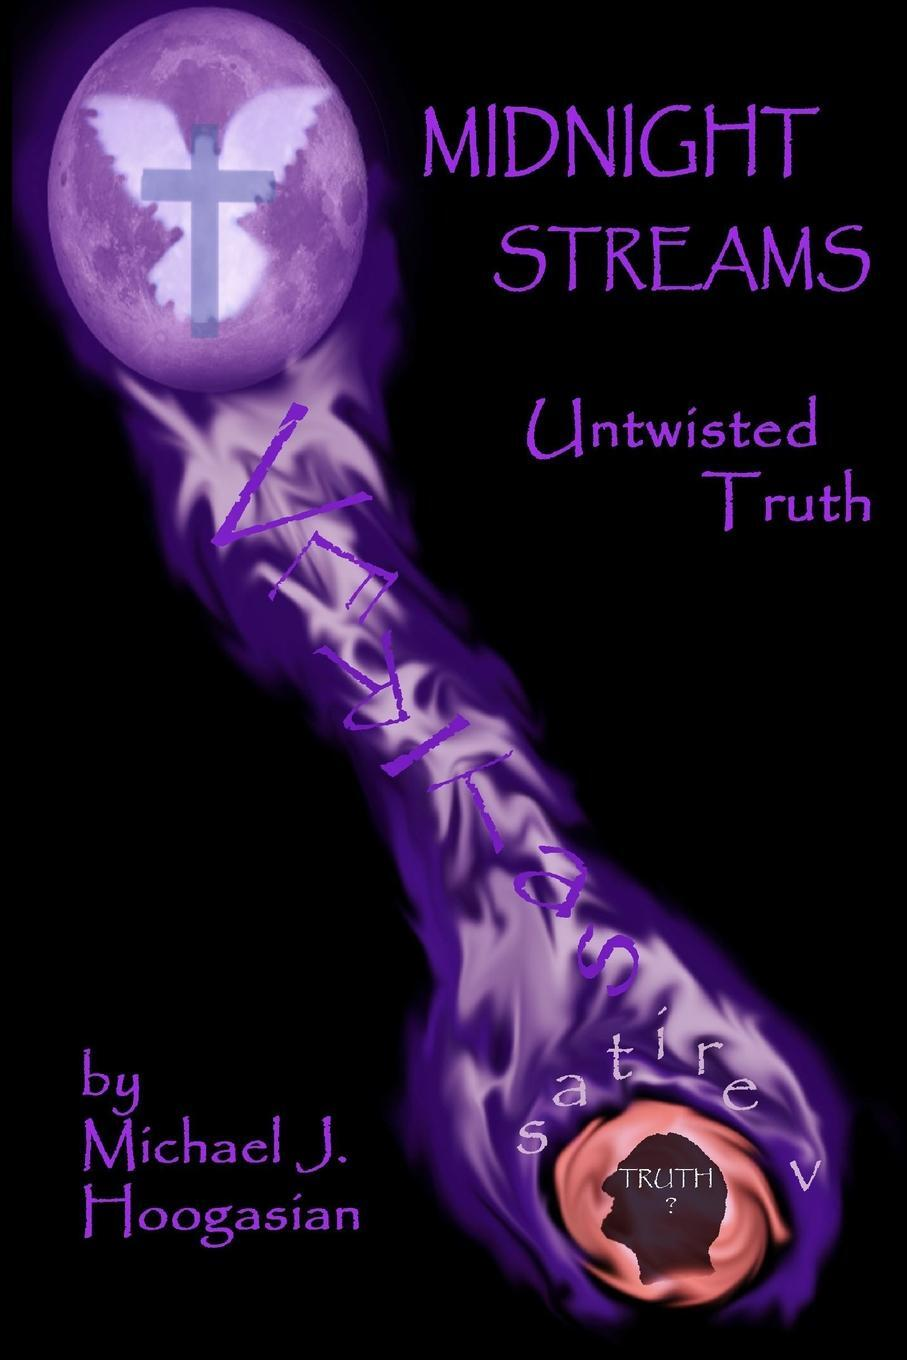 Midnight Streams - Untwisted Truth